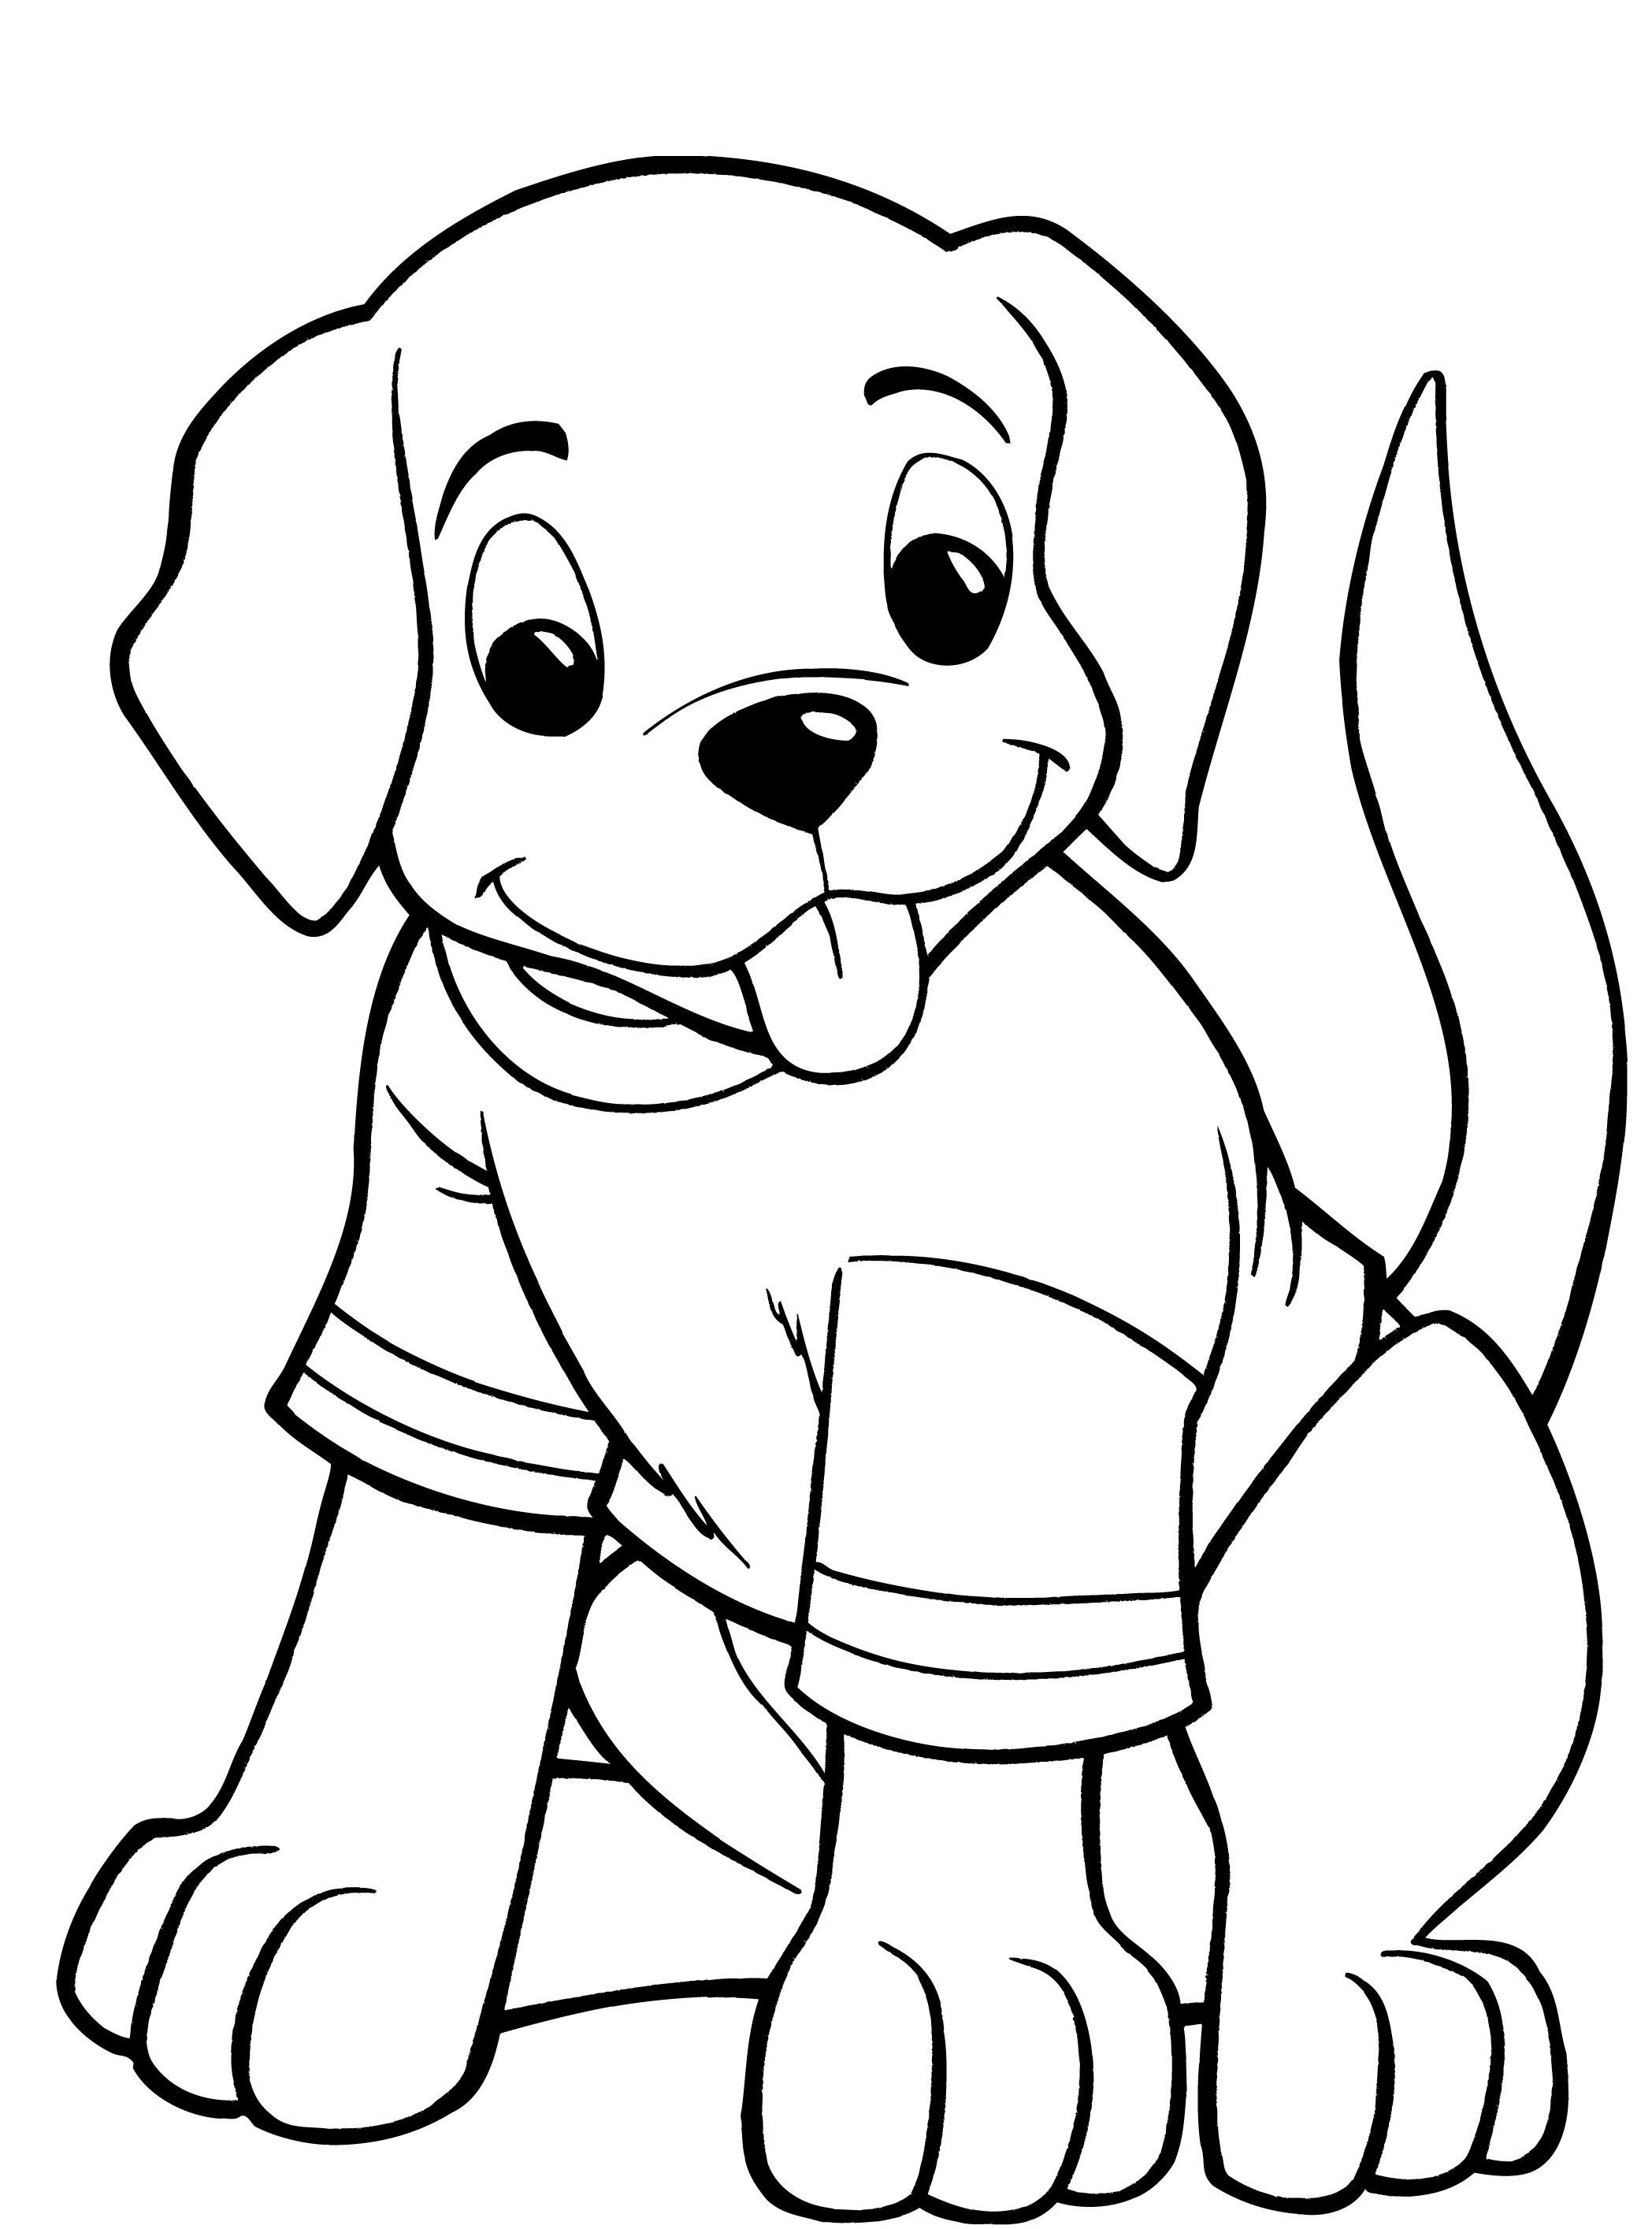 dog coloring in puppy dog coloring pages to download and print for free coloring dog in